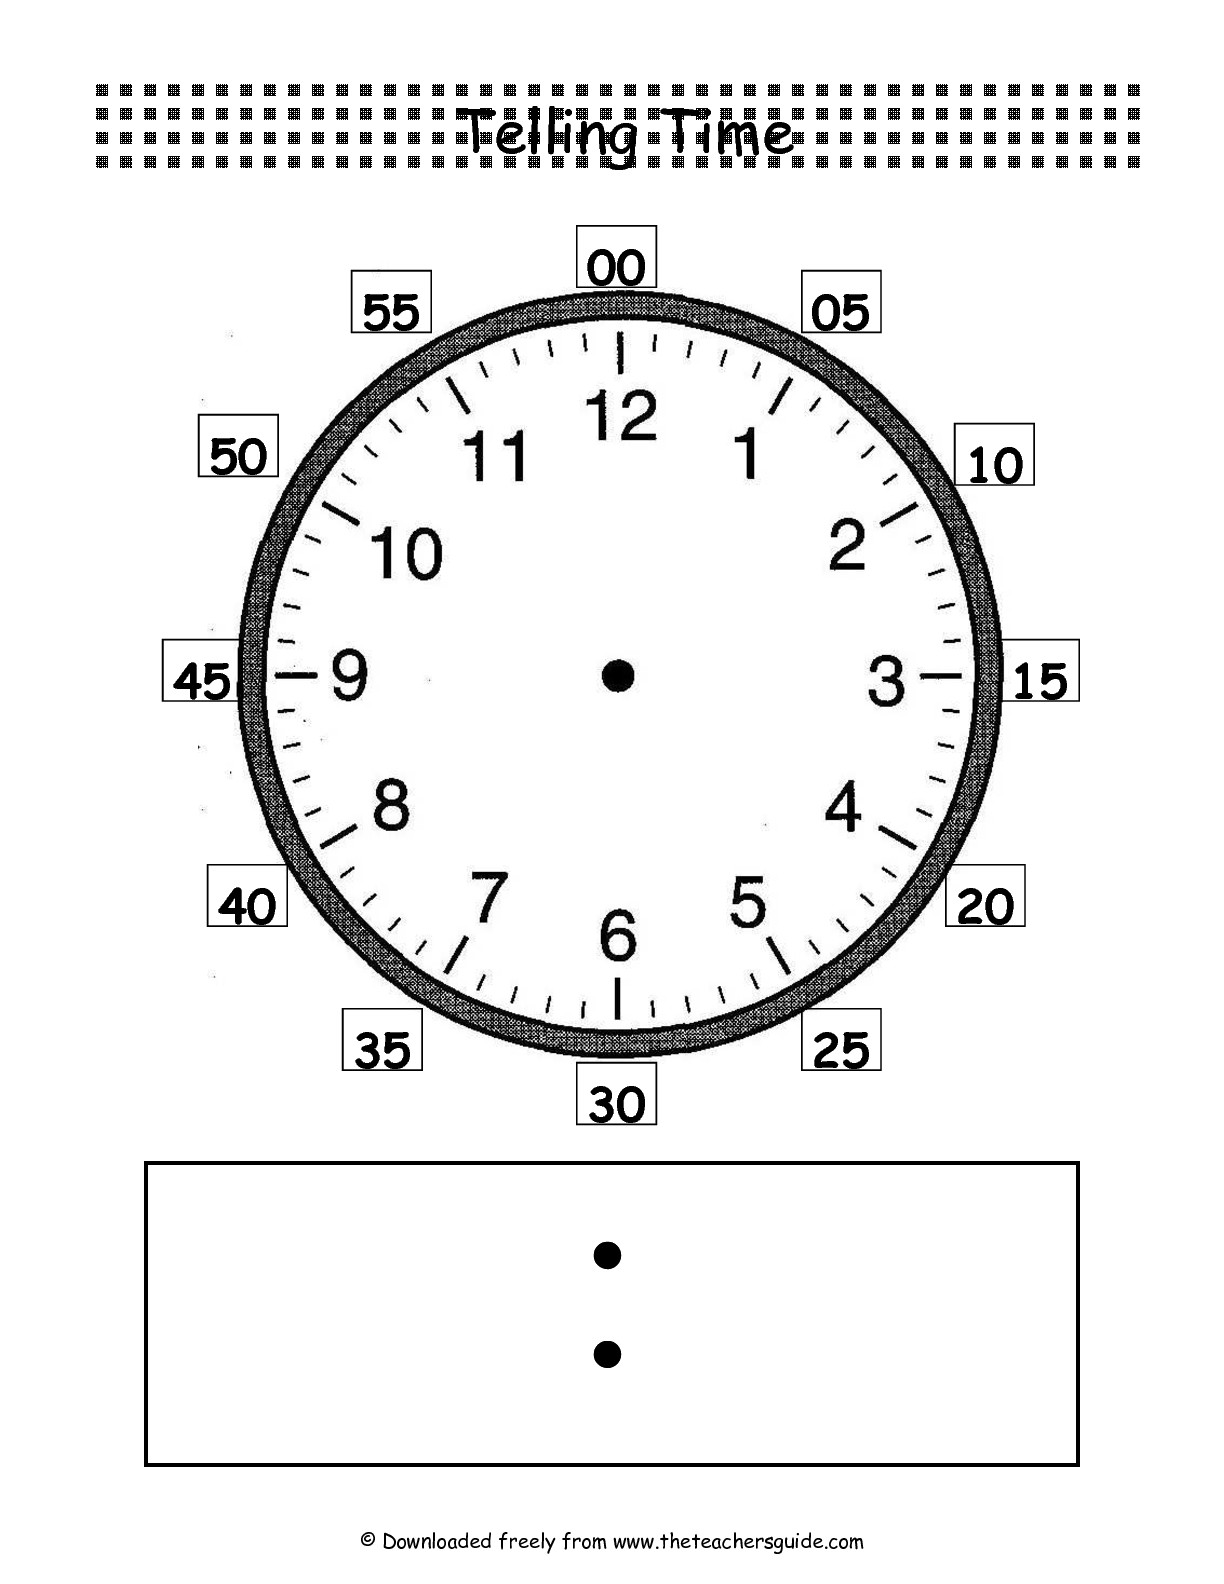 Telling Time Worksheets From The Teacher